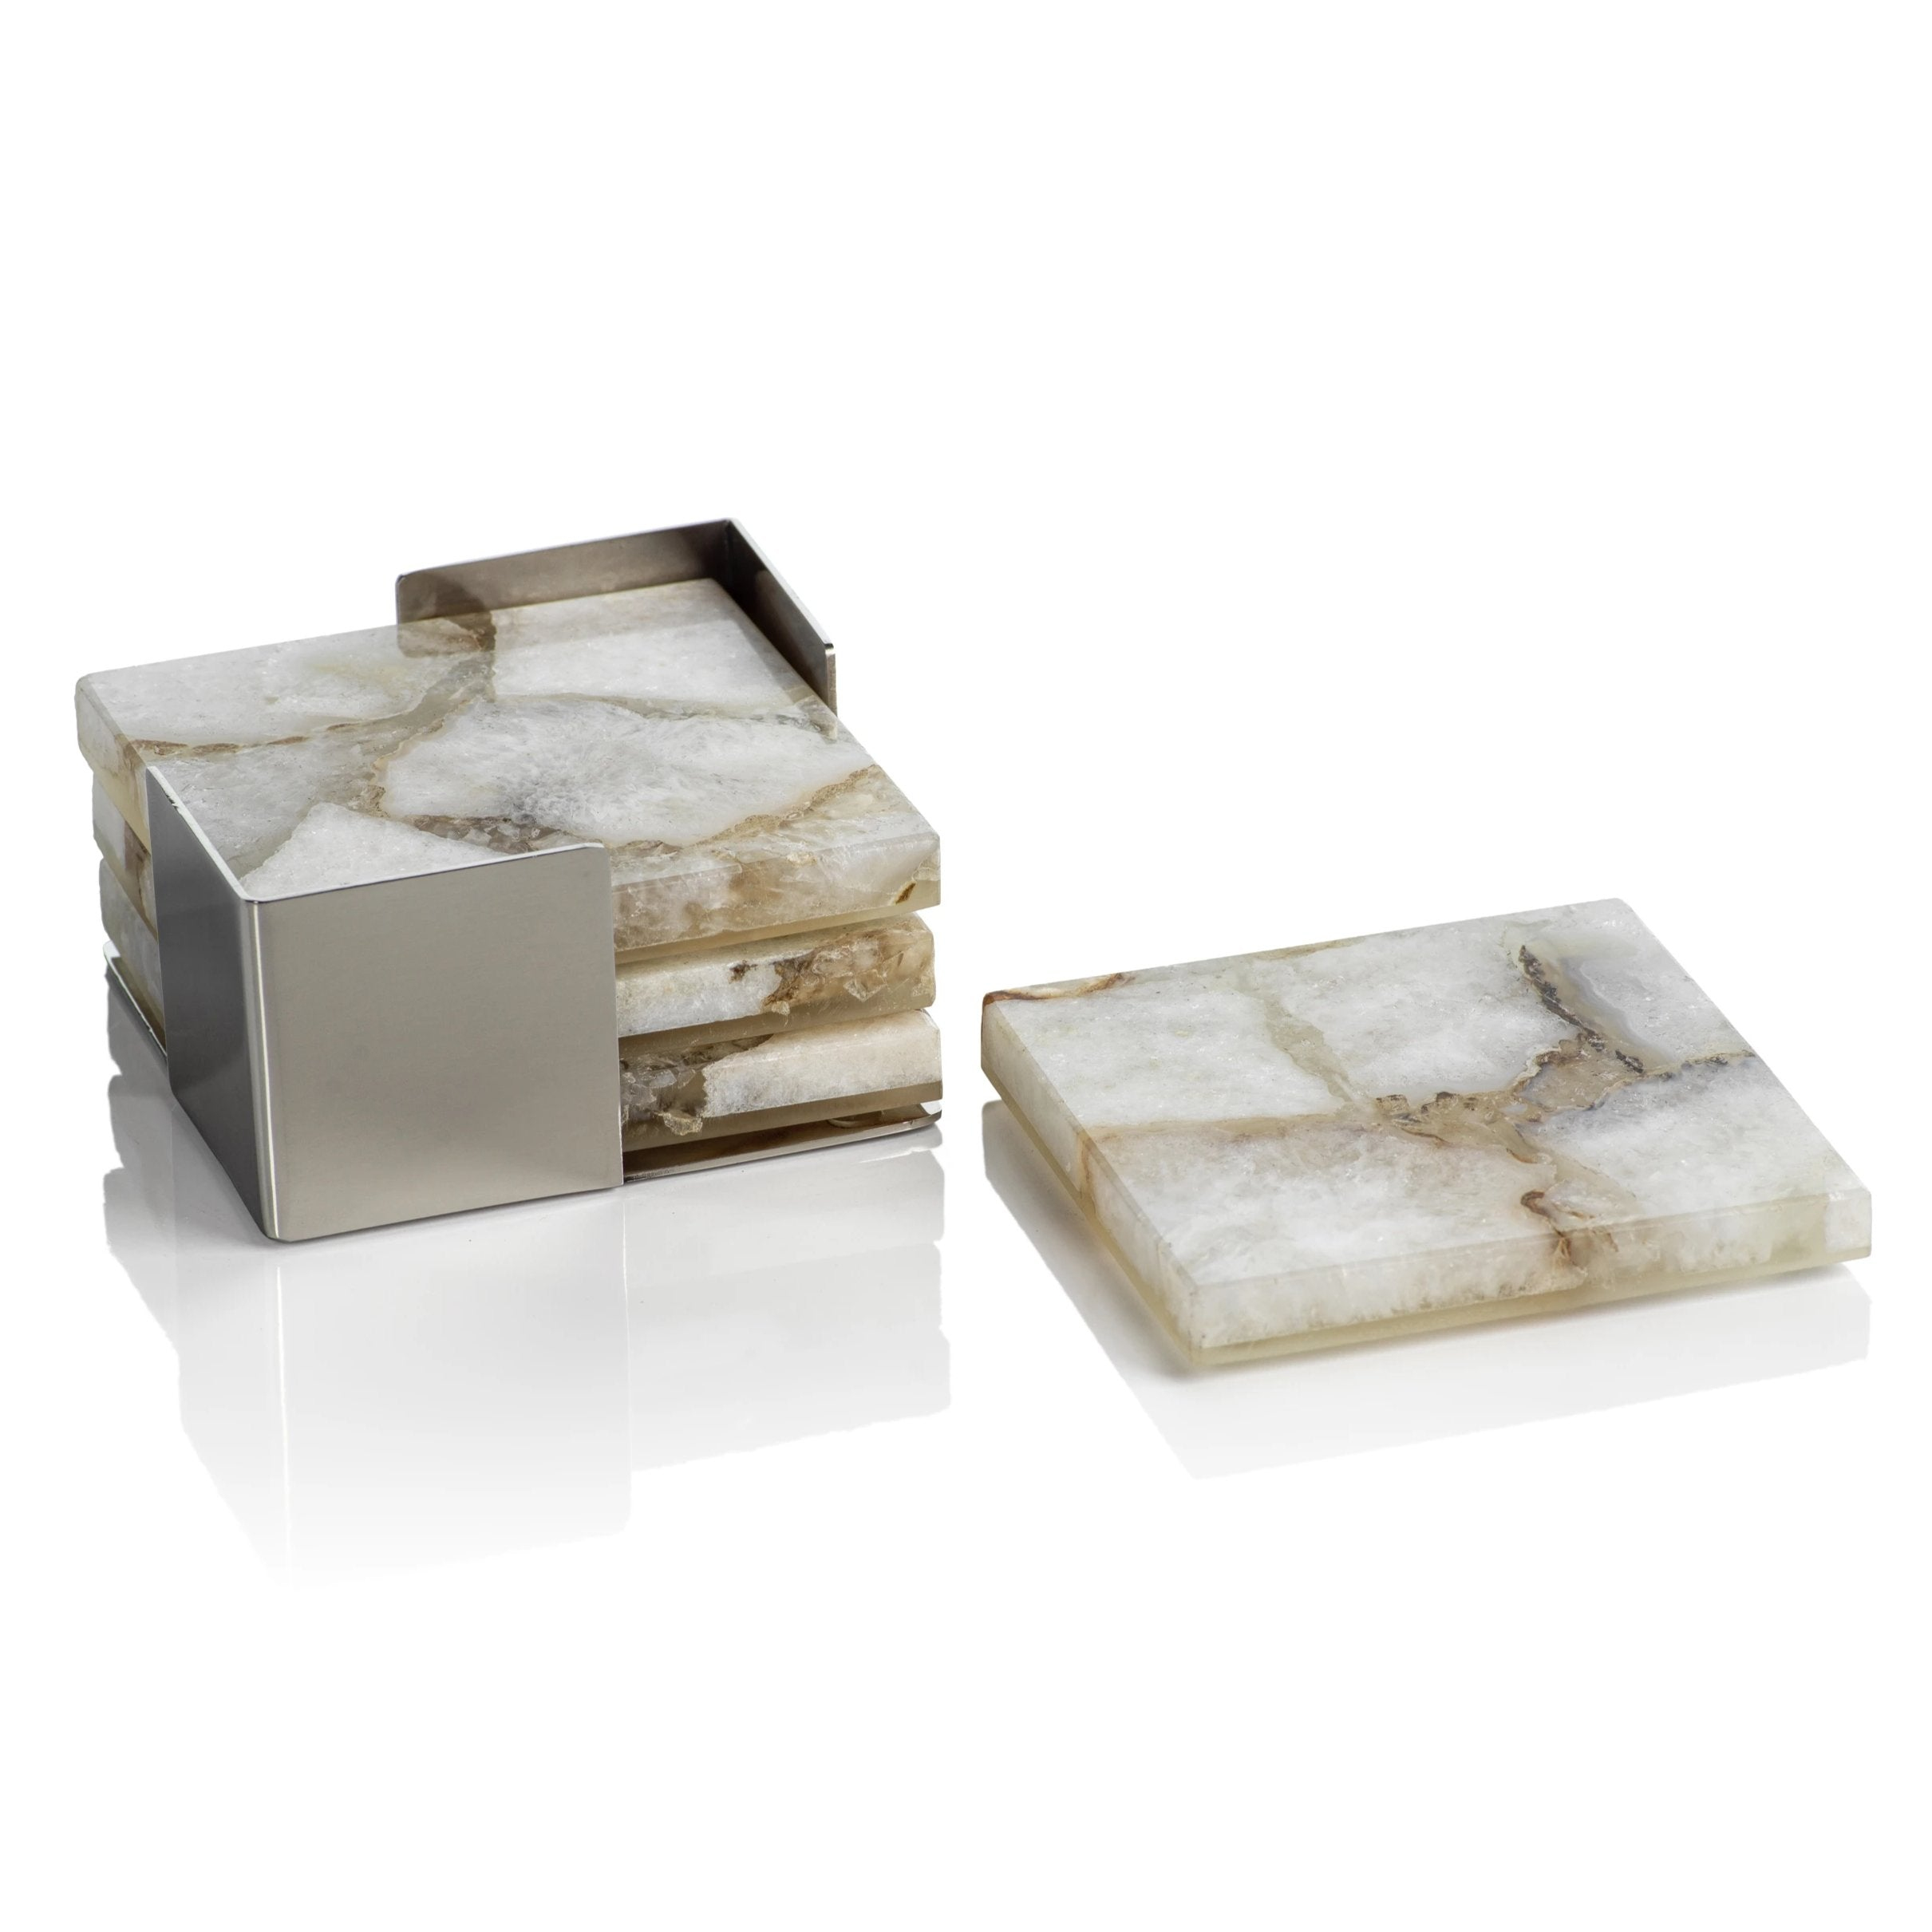 Set/4 Crete Agate Coasters on Metal Tray - Taupe/White - CARLYLE AVENUE